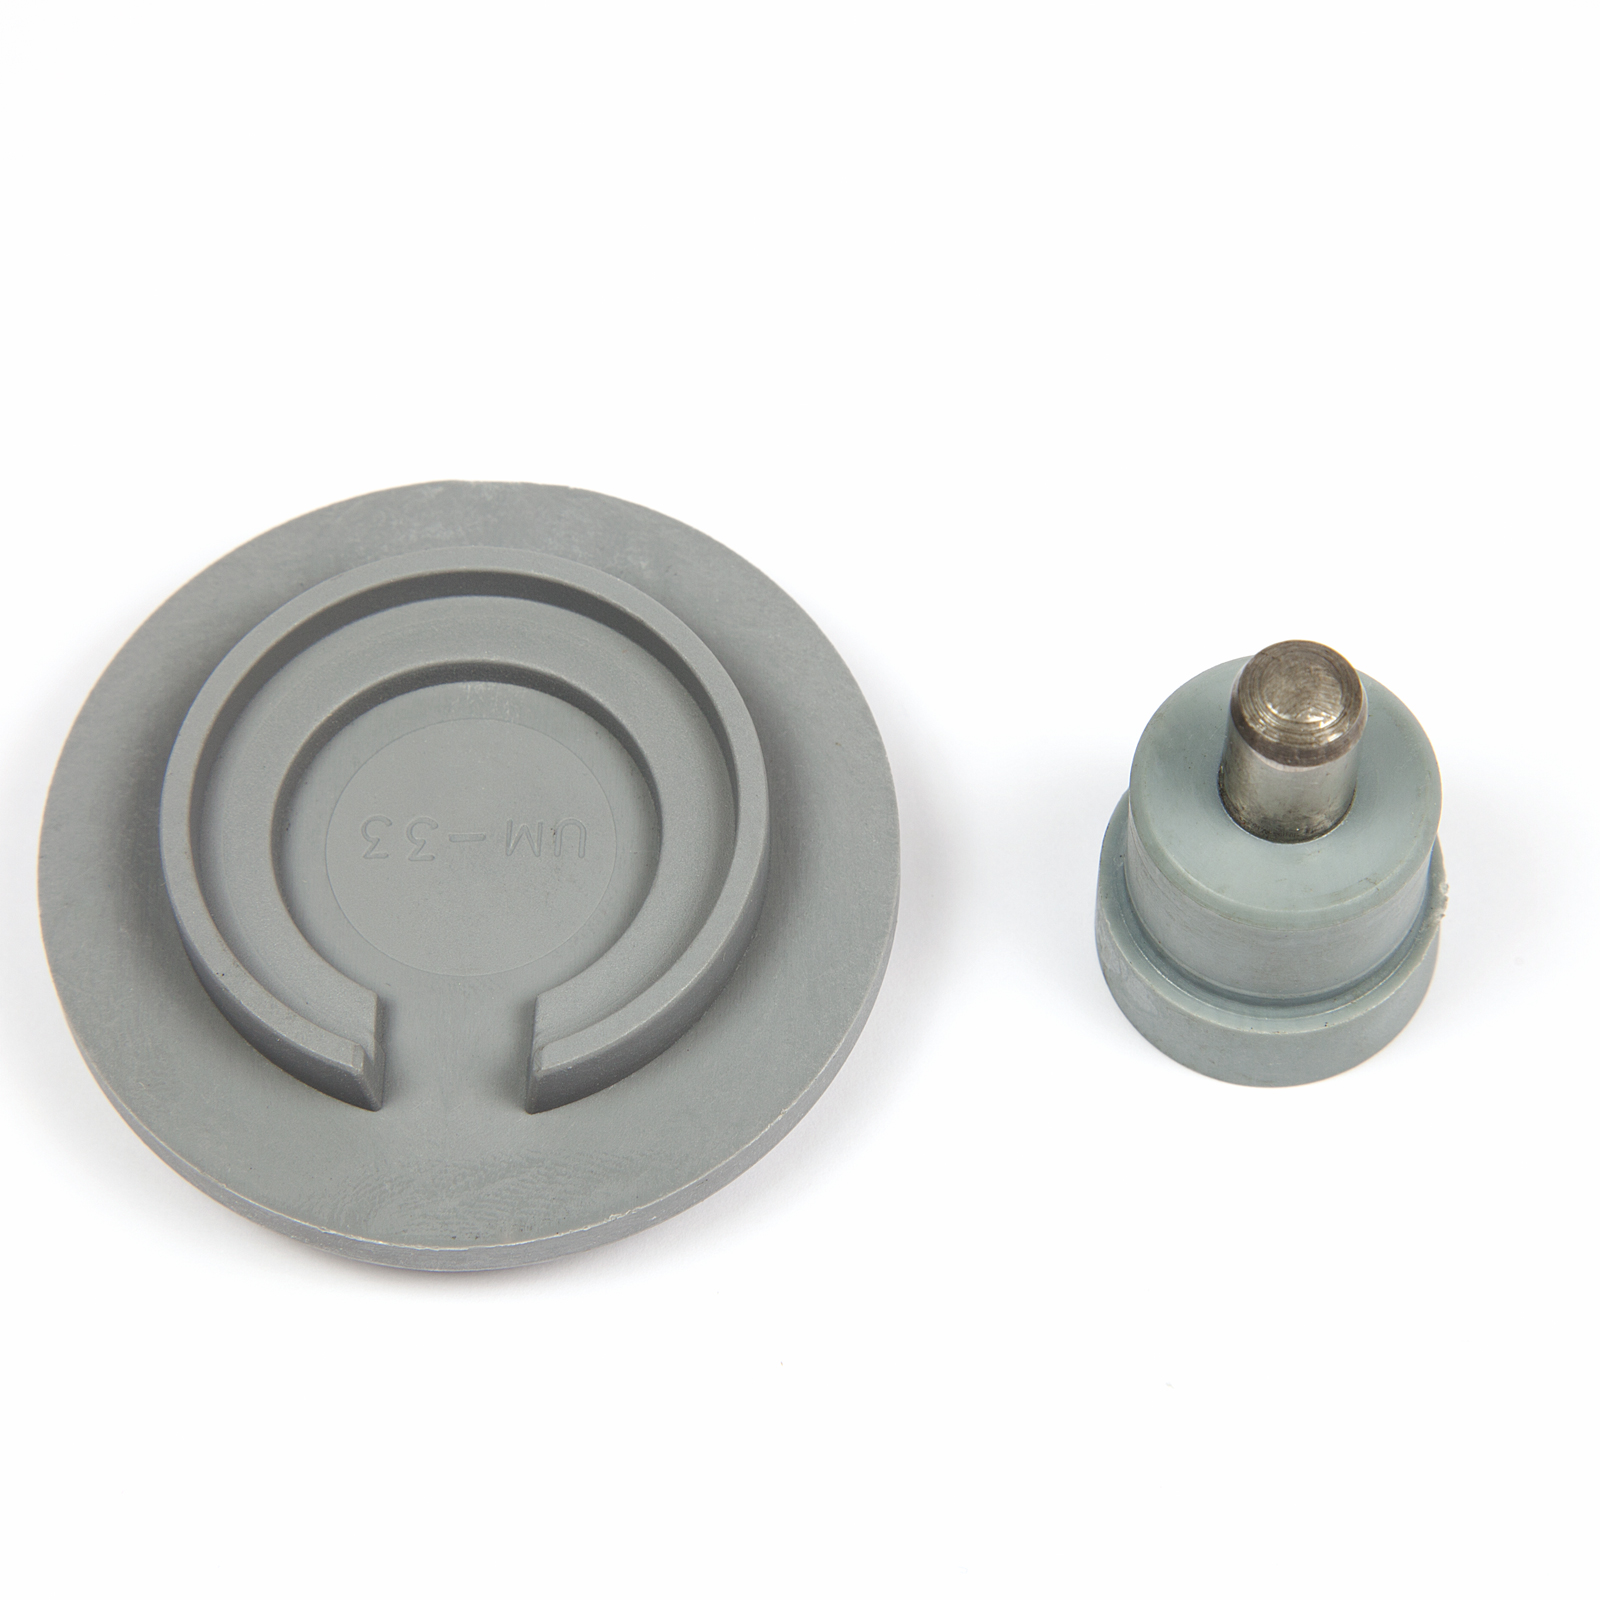 33mm Round C25 Keyringfab Assembly Tool to suit MO-33D Keyring (UM-33)